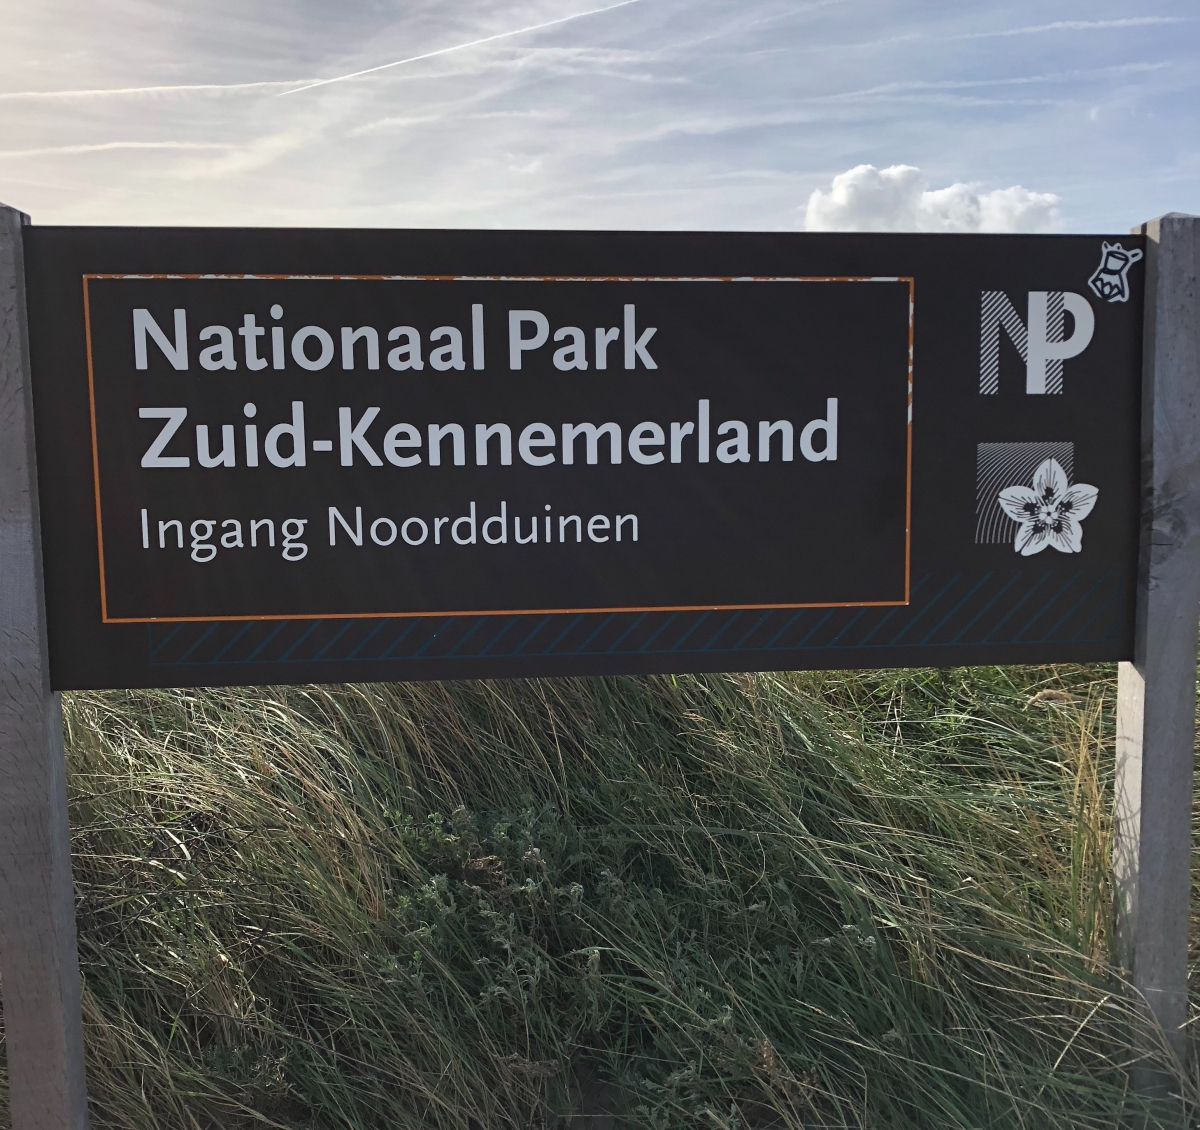 National Park Zuid-Kennemerland